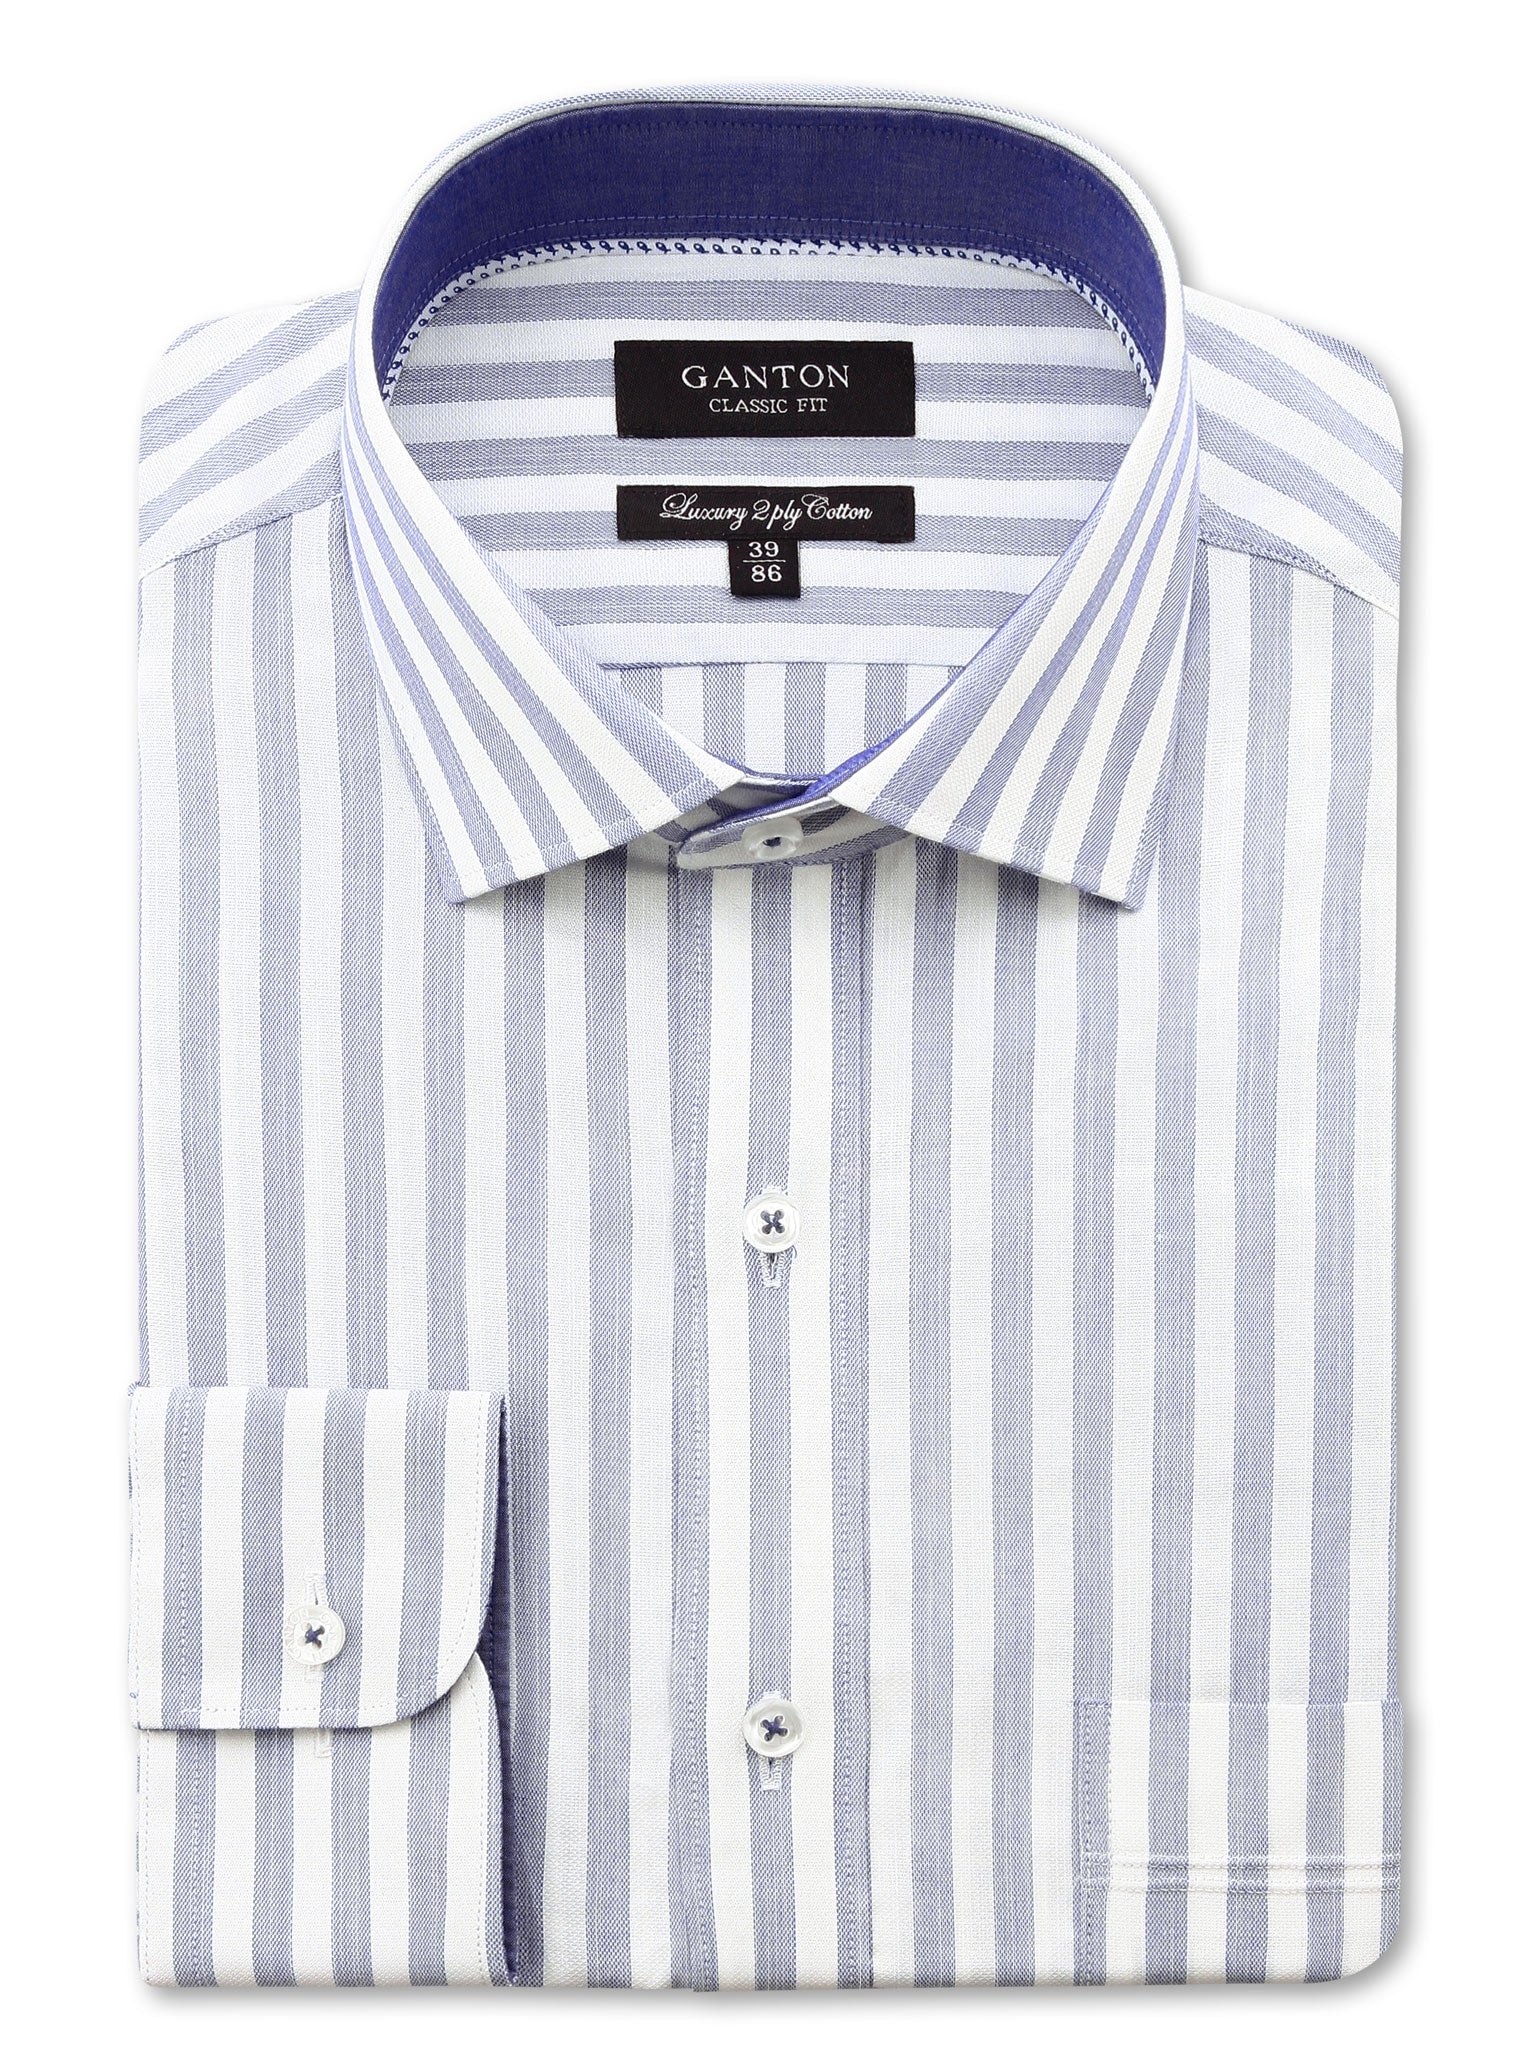 White Navy Stripe Classic Fit Gordon Luxury 2 Ply Cotton Shirt